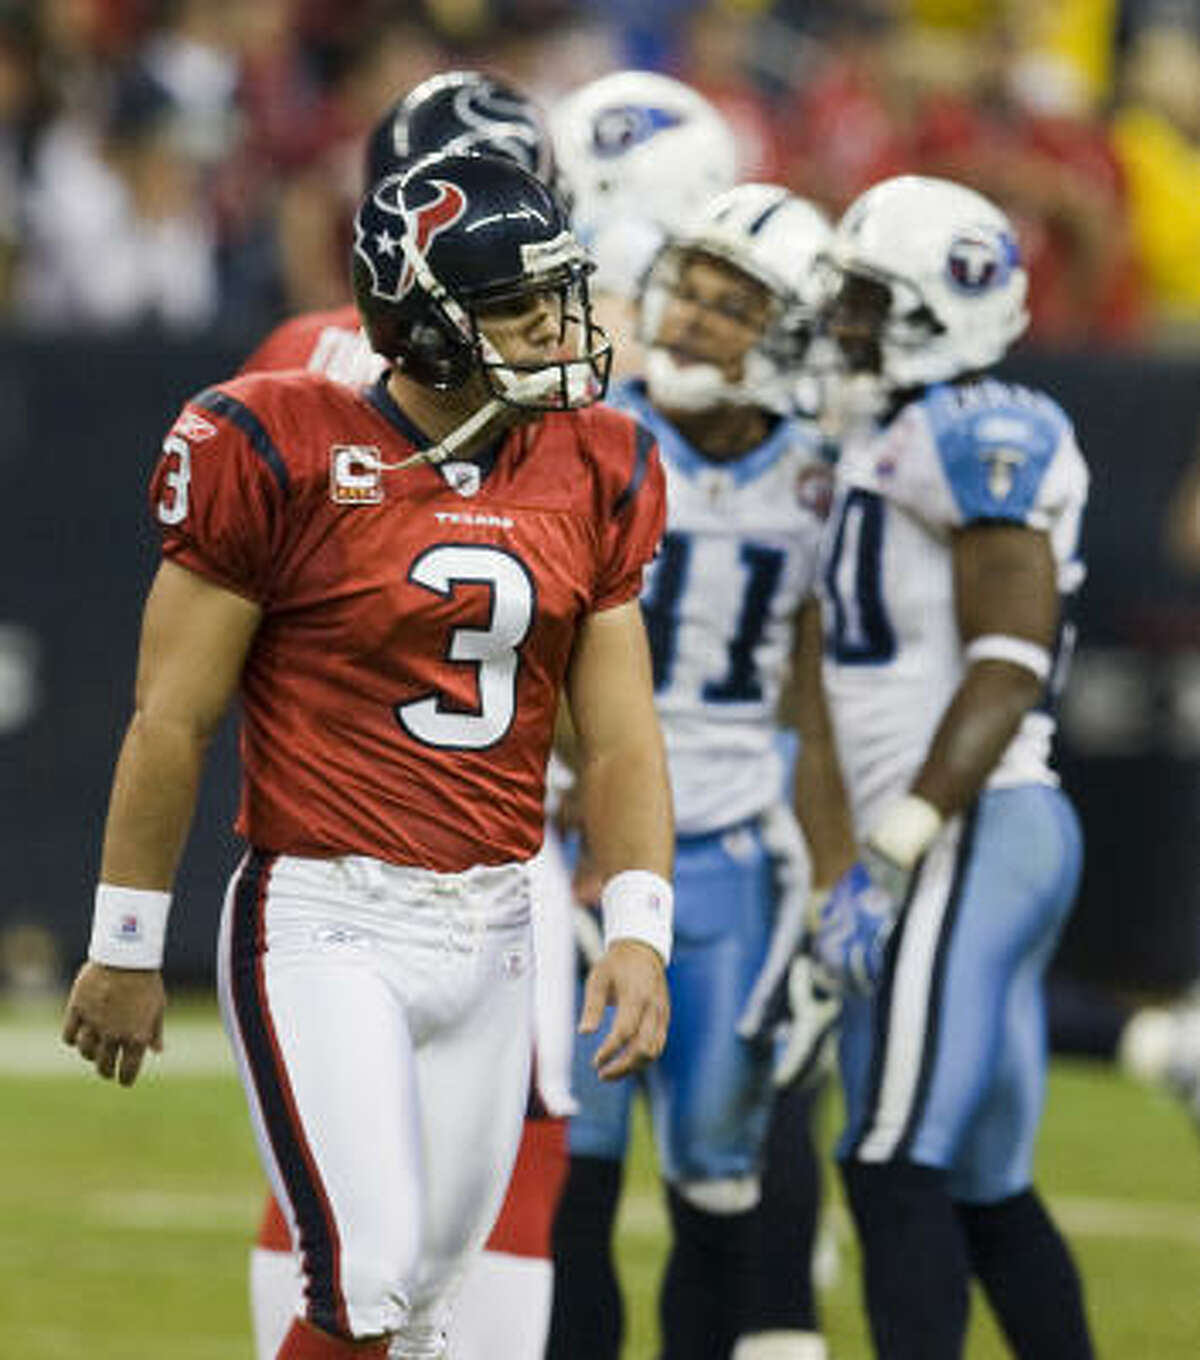 Nov. 23, 2009 Texans kicker Kris Brown misses a field goal in the final seconds that would have tied the score during the fourth quarter against the Titans on Monday Night Football. The Titans beat the Texans 20-17.